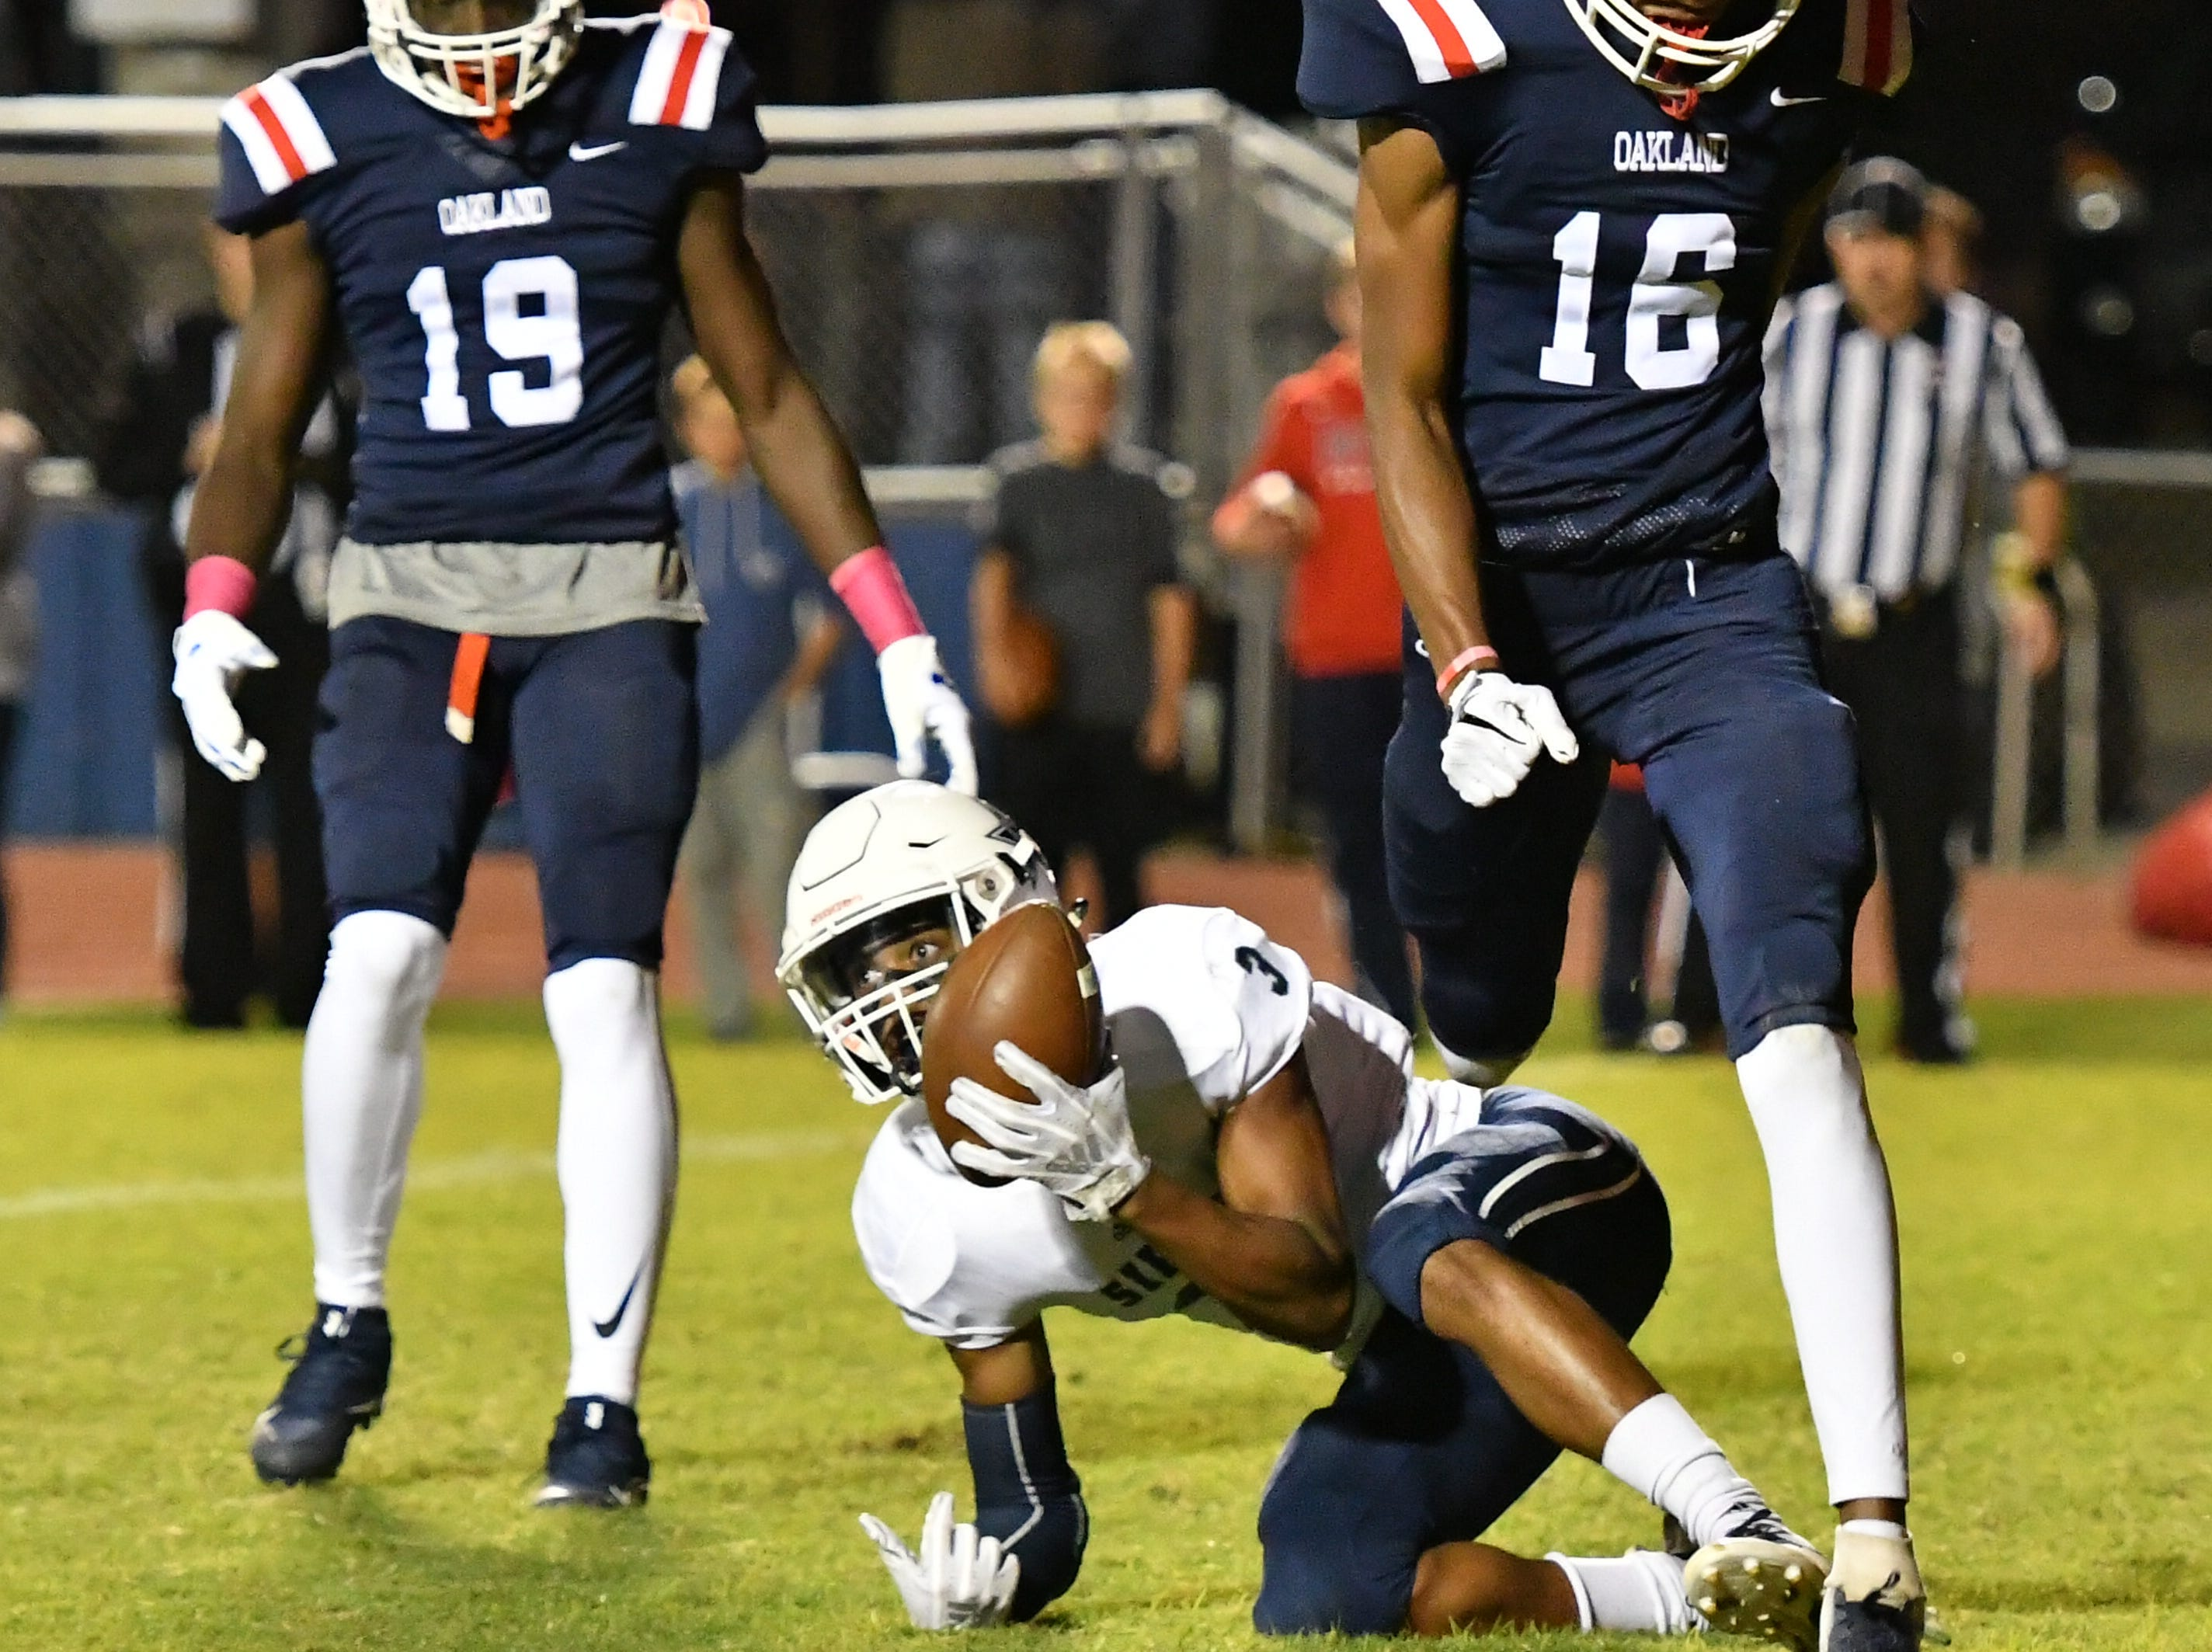 Jermaine Majors of Siegel makes a touchdown catch Friday night against Oakland.